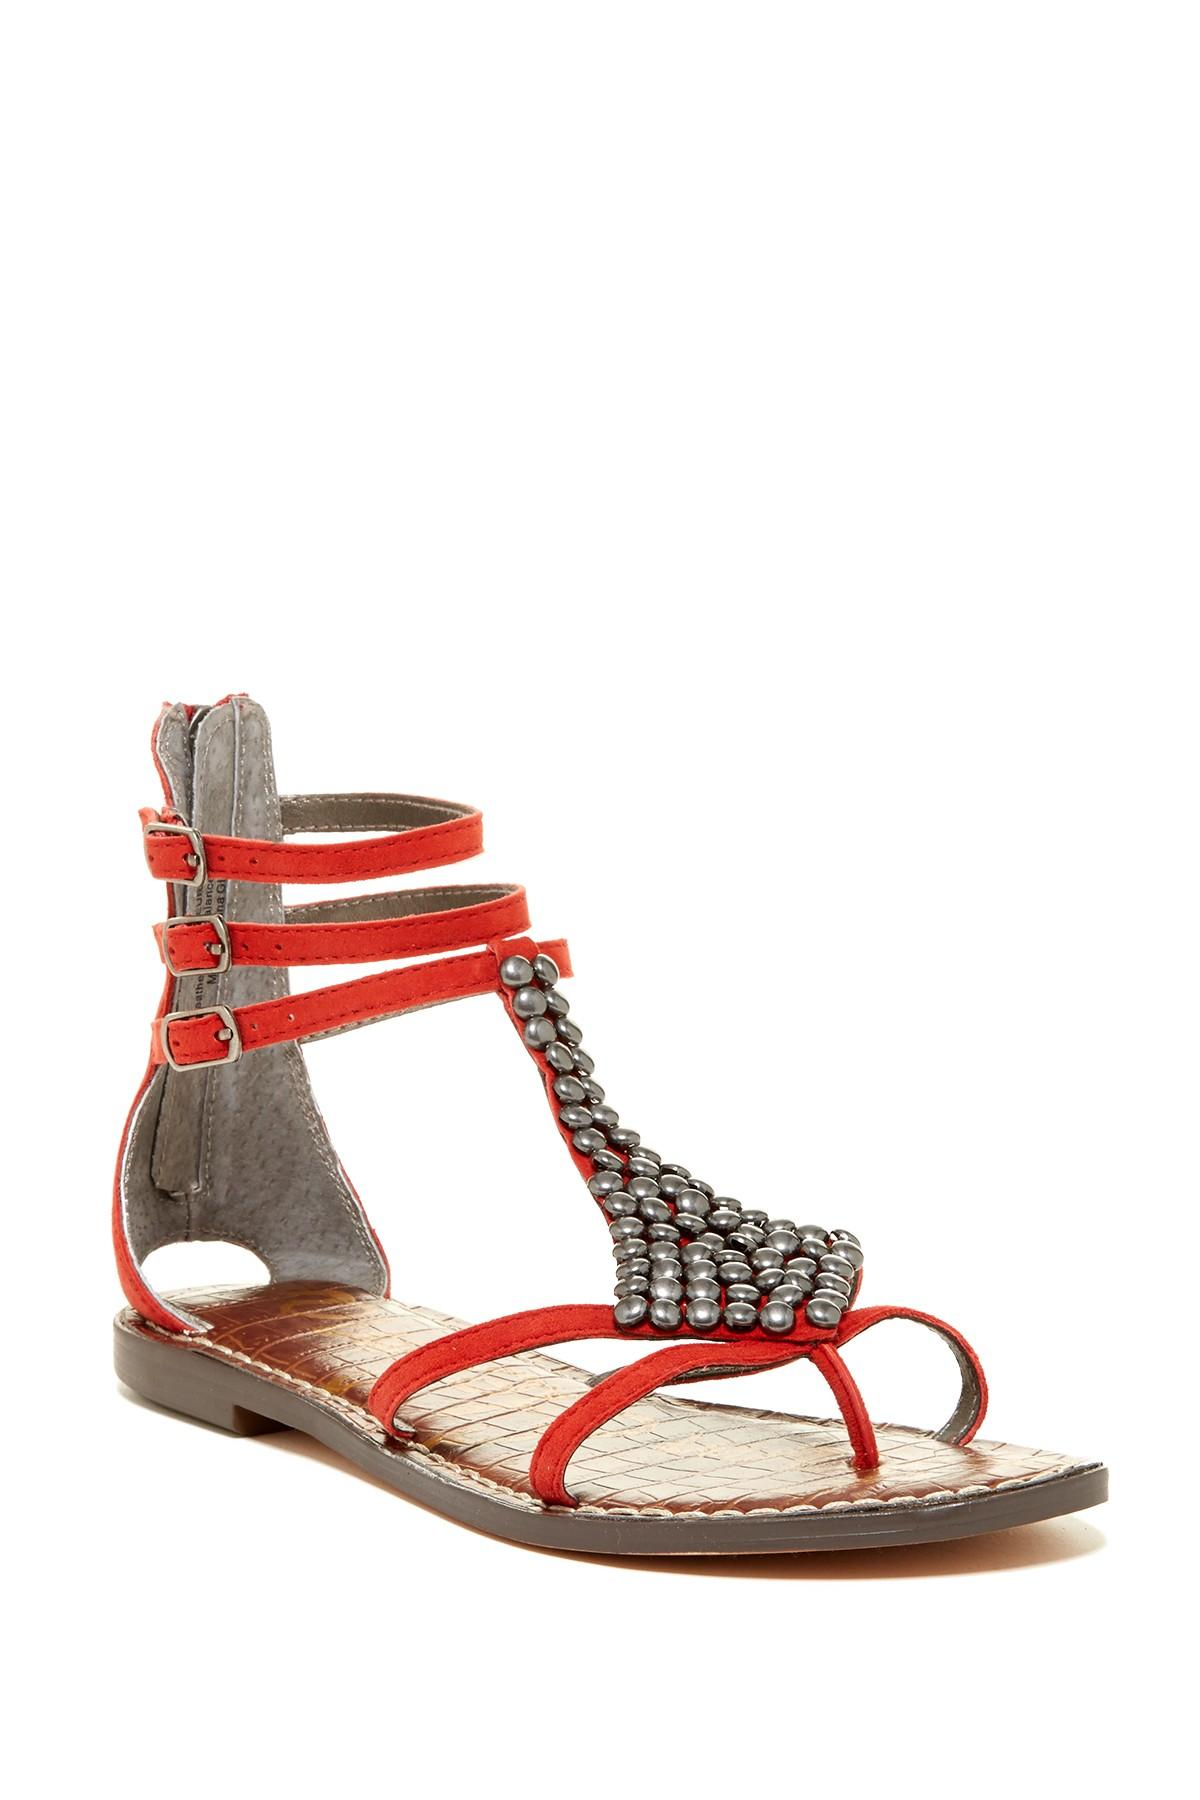 5beab23cf39 Lyst - Sam Edelman Ginger Gladiator Flat in Red